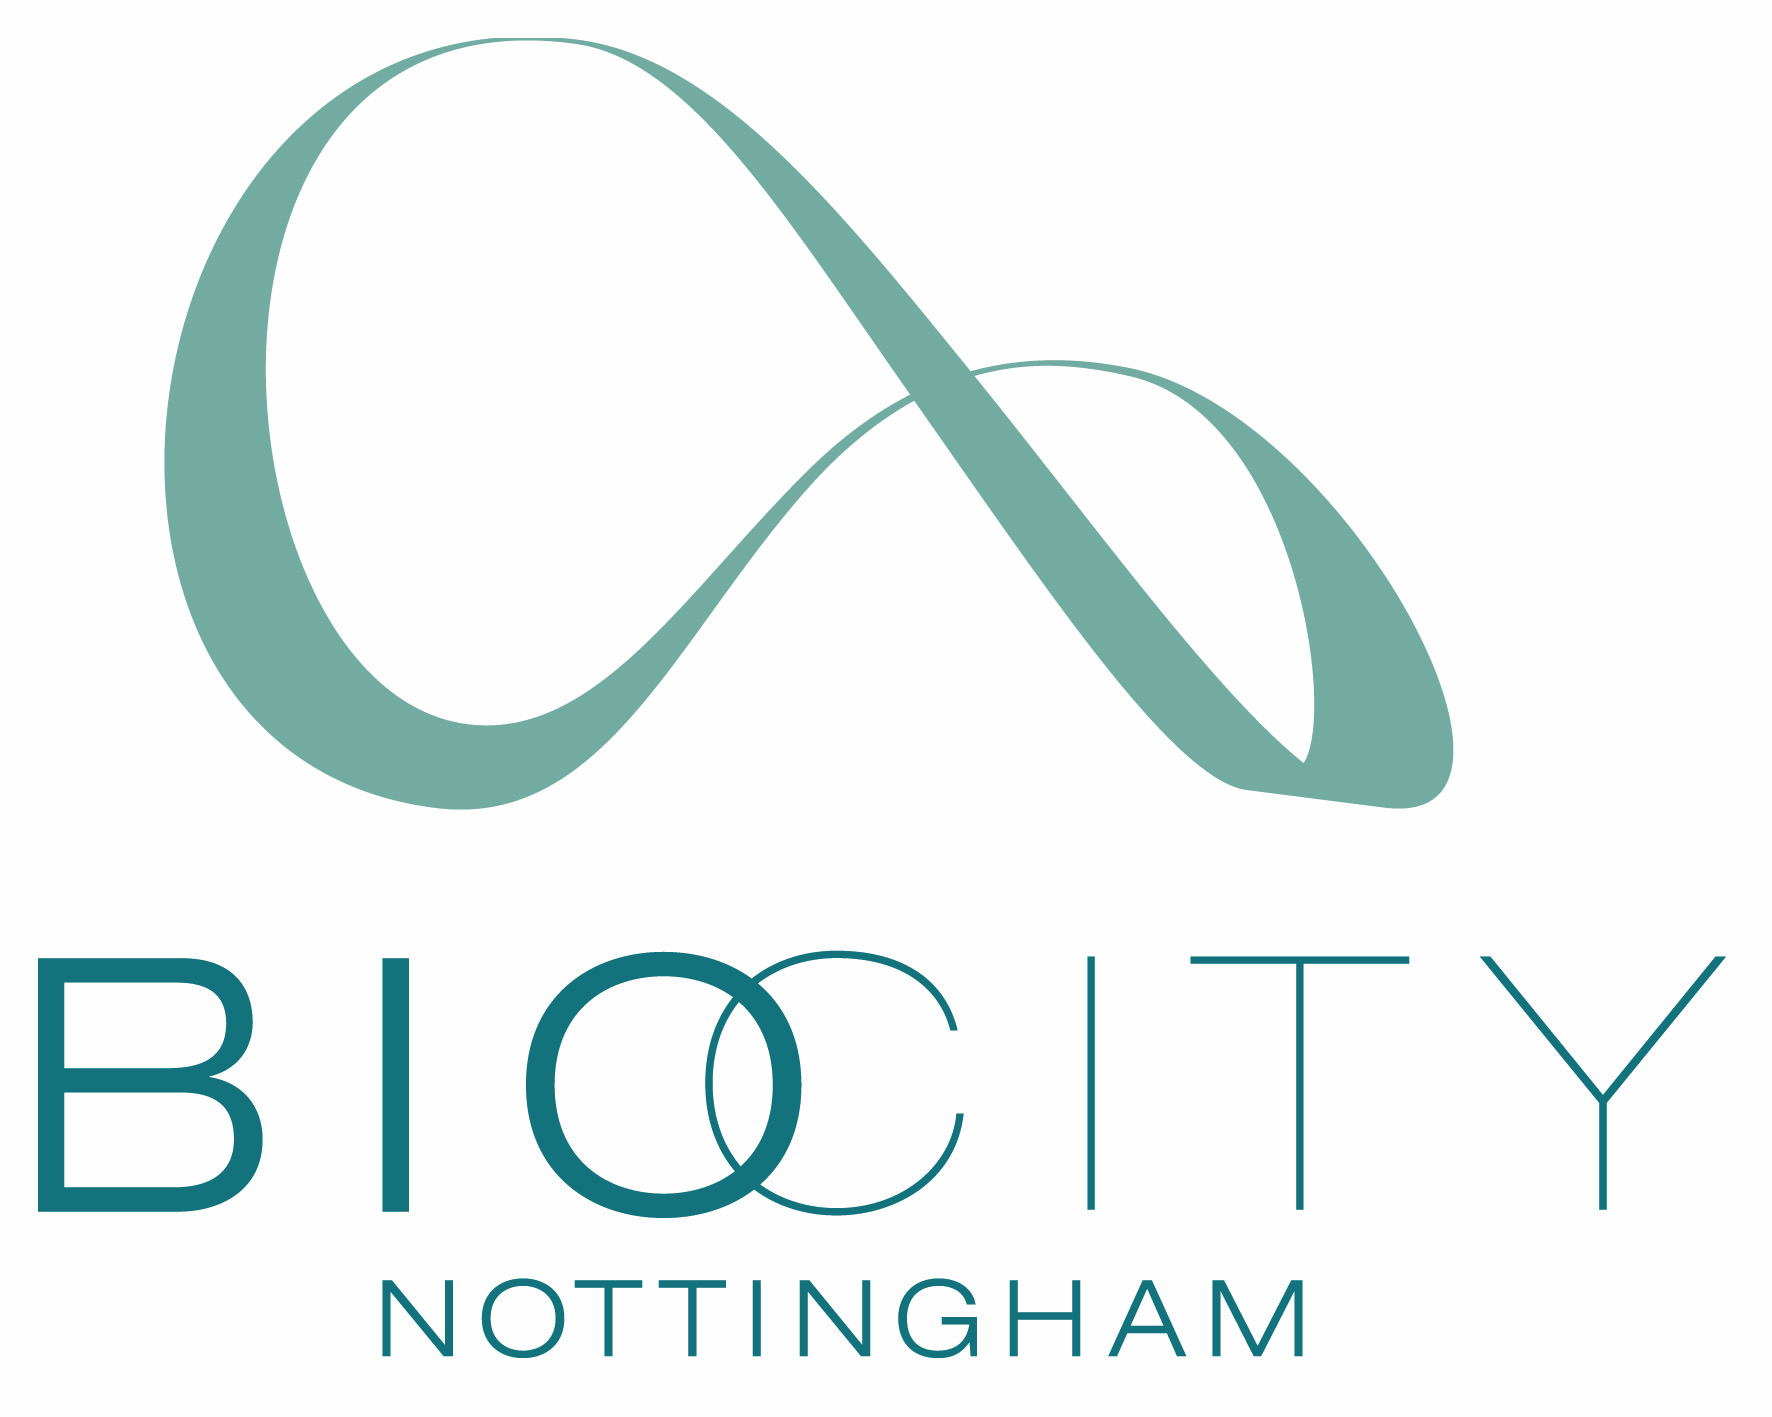 OBN Senior Executive Breakfast Club: Trends in Life Sciences Financing, Is Crowdfunding an option? 18th September - Nottingham